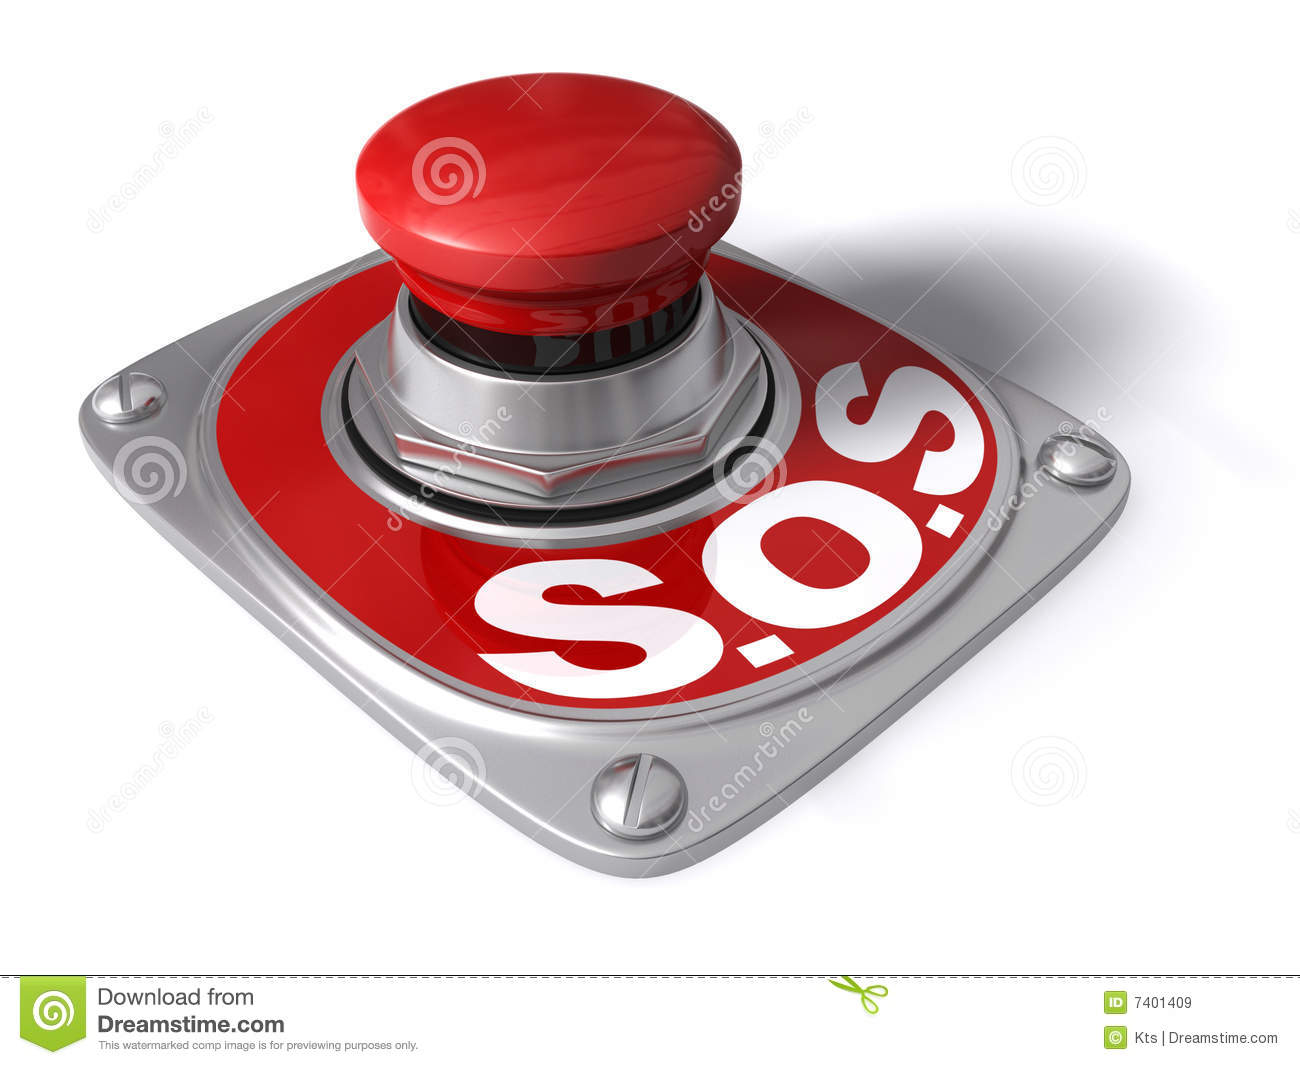 SOS Royalty Free Stock Images - Image: 7401409